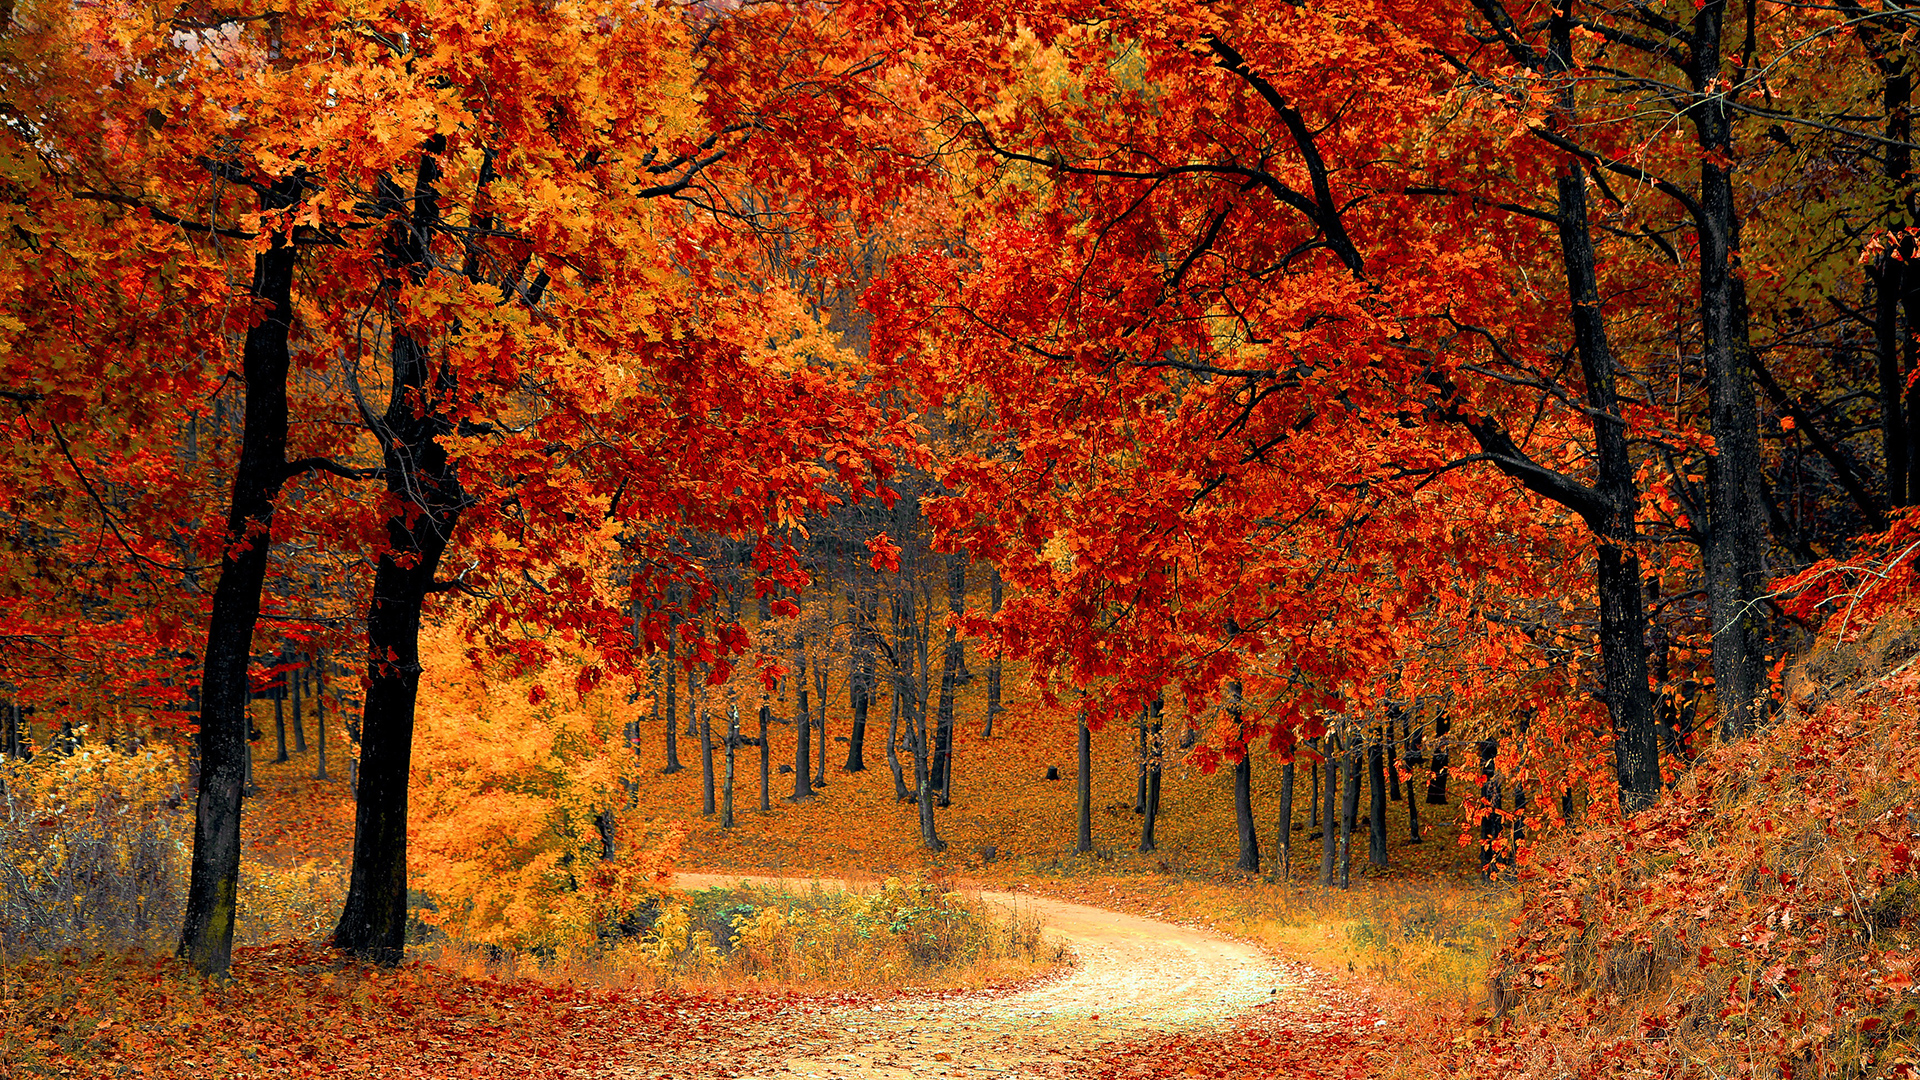 Breathtaking-fiery-forest-in-Fall-season-1920x1080-wallpaper-wpc5803046